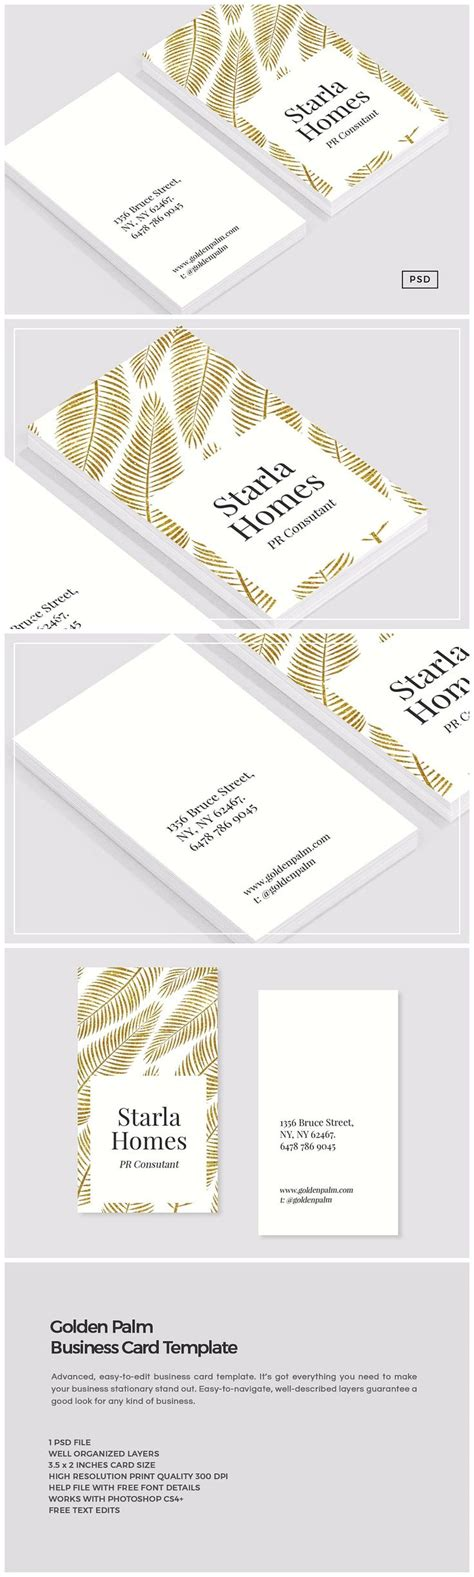 business card template creator how can i make business cards at home for free free